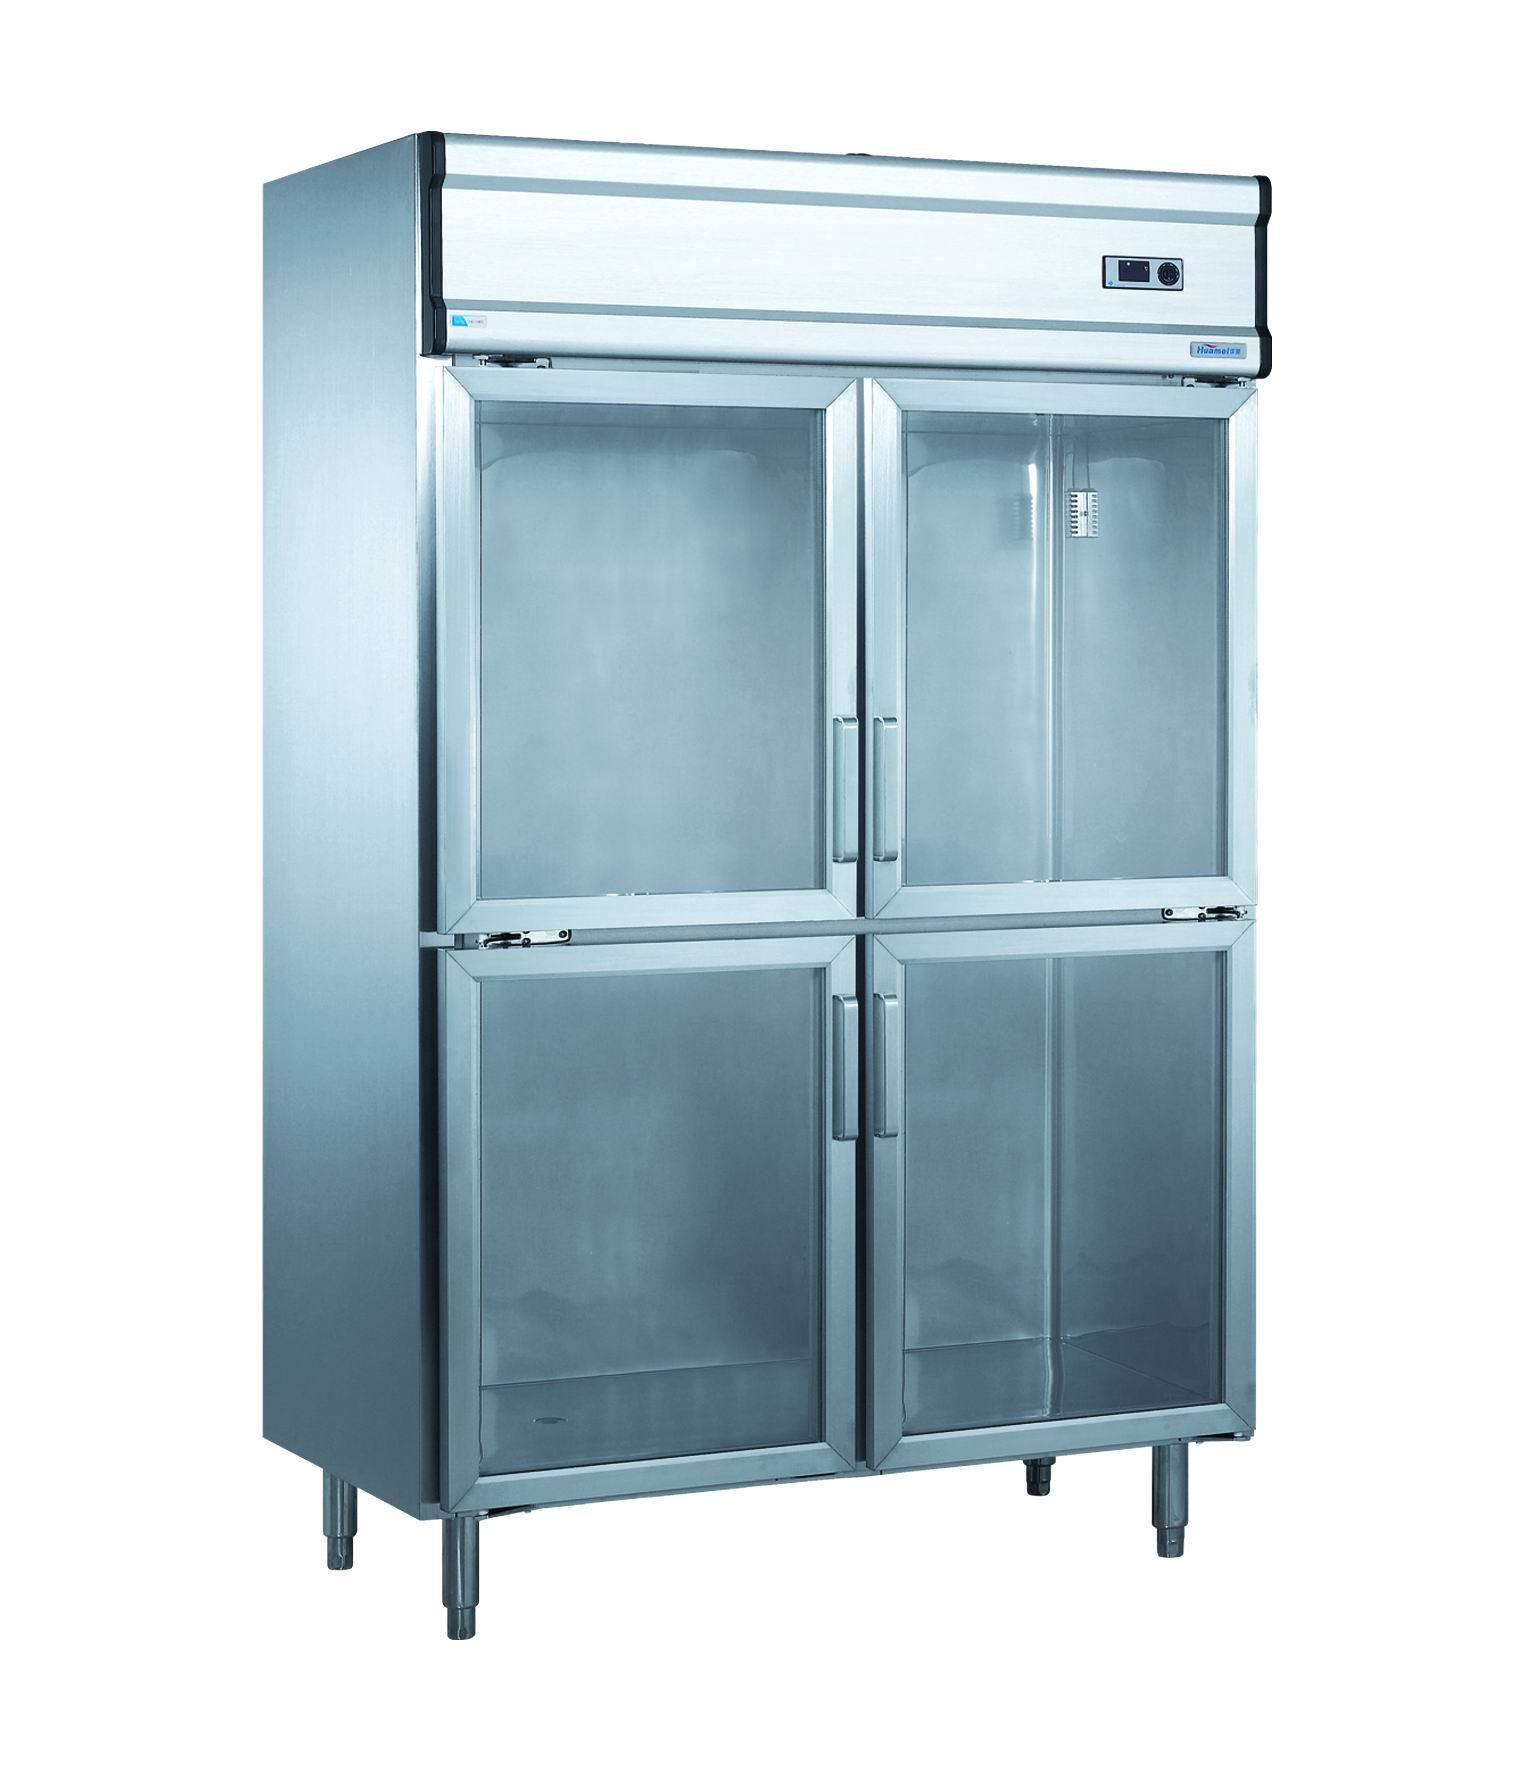 Commercial glass door refrigerator for sale images for Commercial entry doors